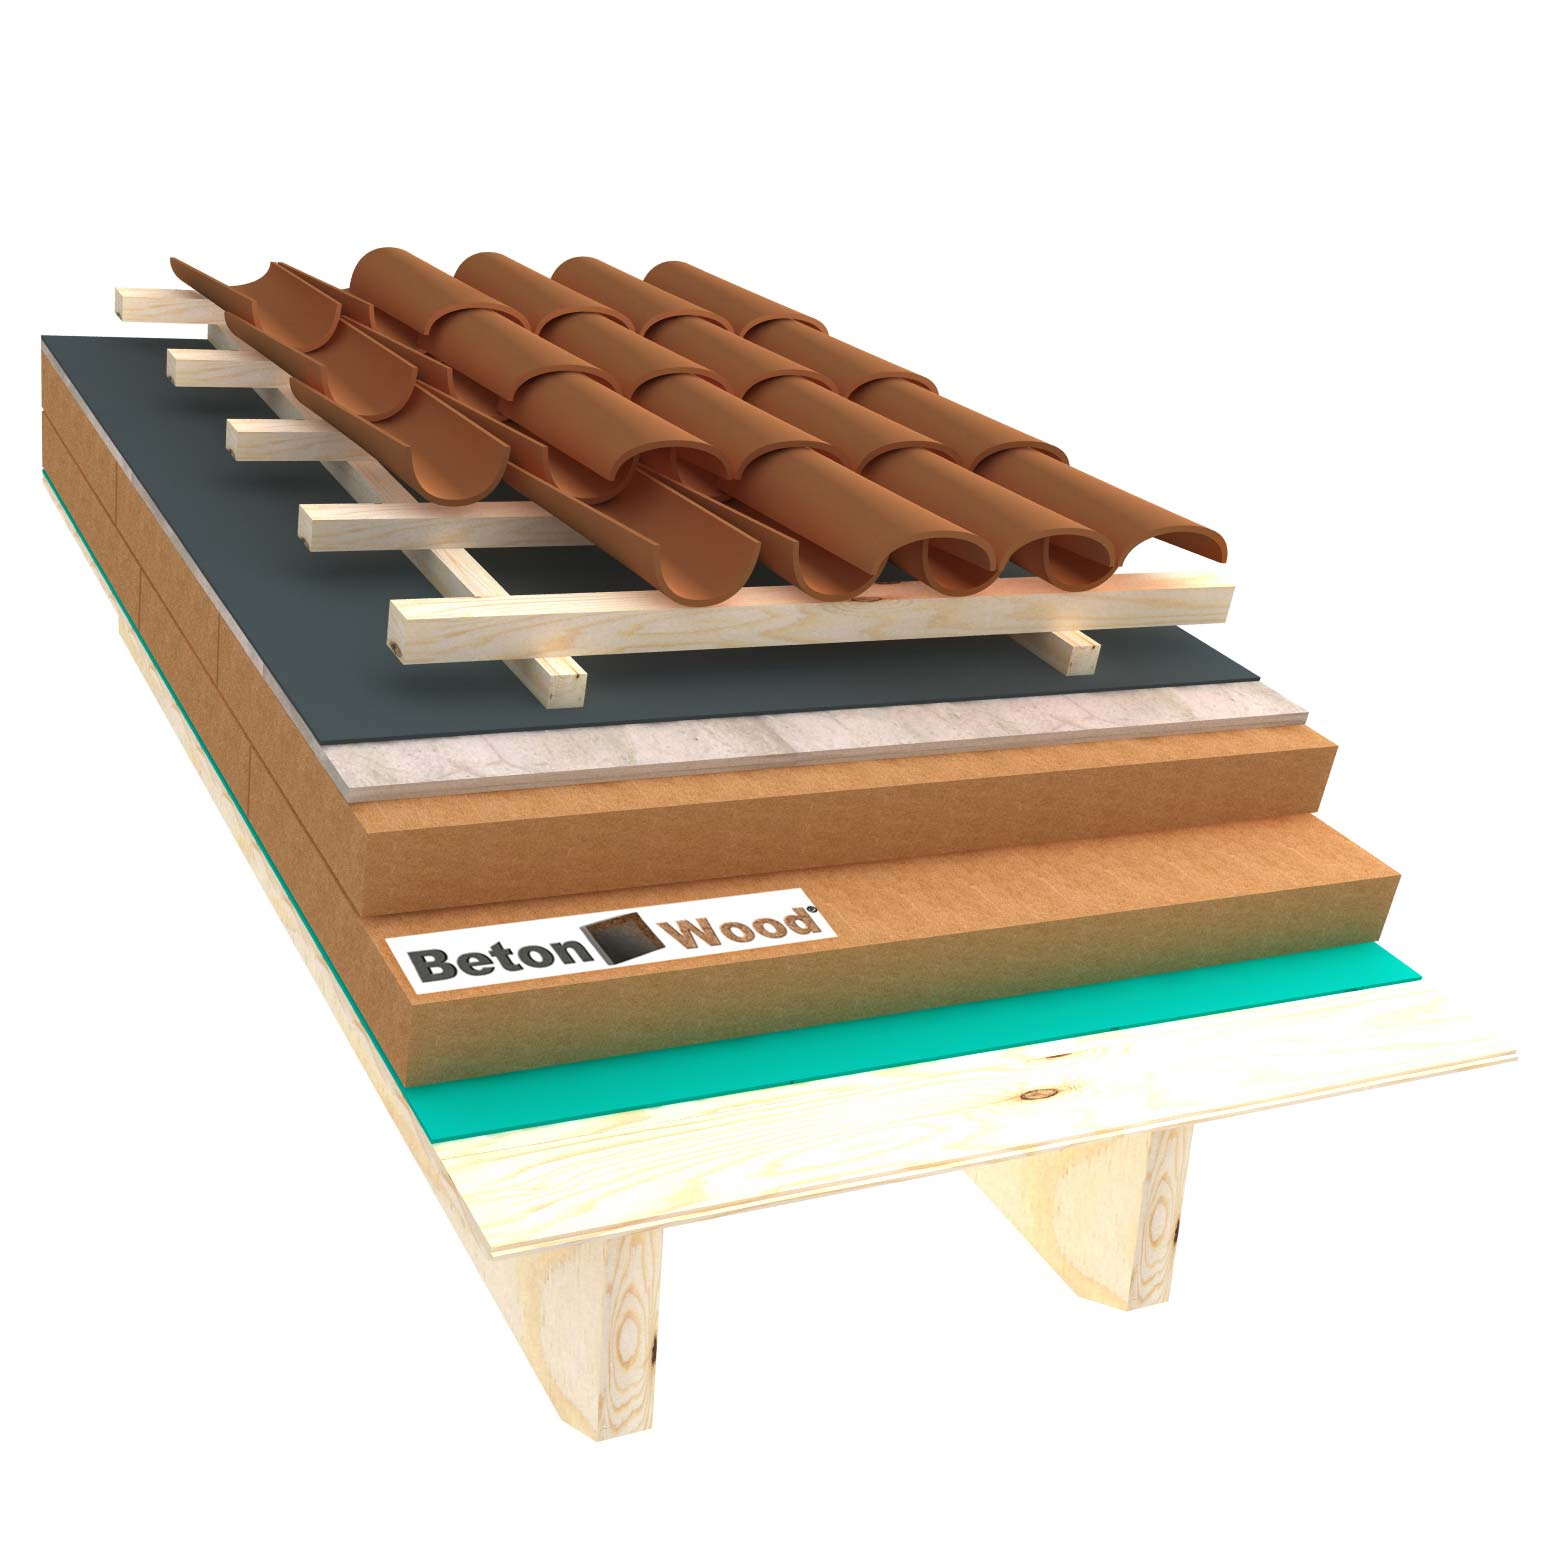 Ventilated roof with wood fiber Special and cement bonded particle boards on matchboarding